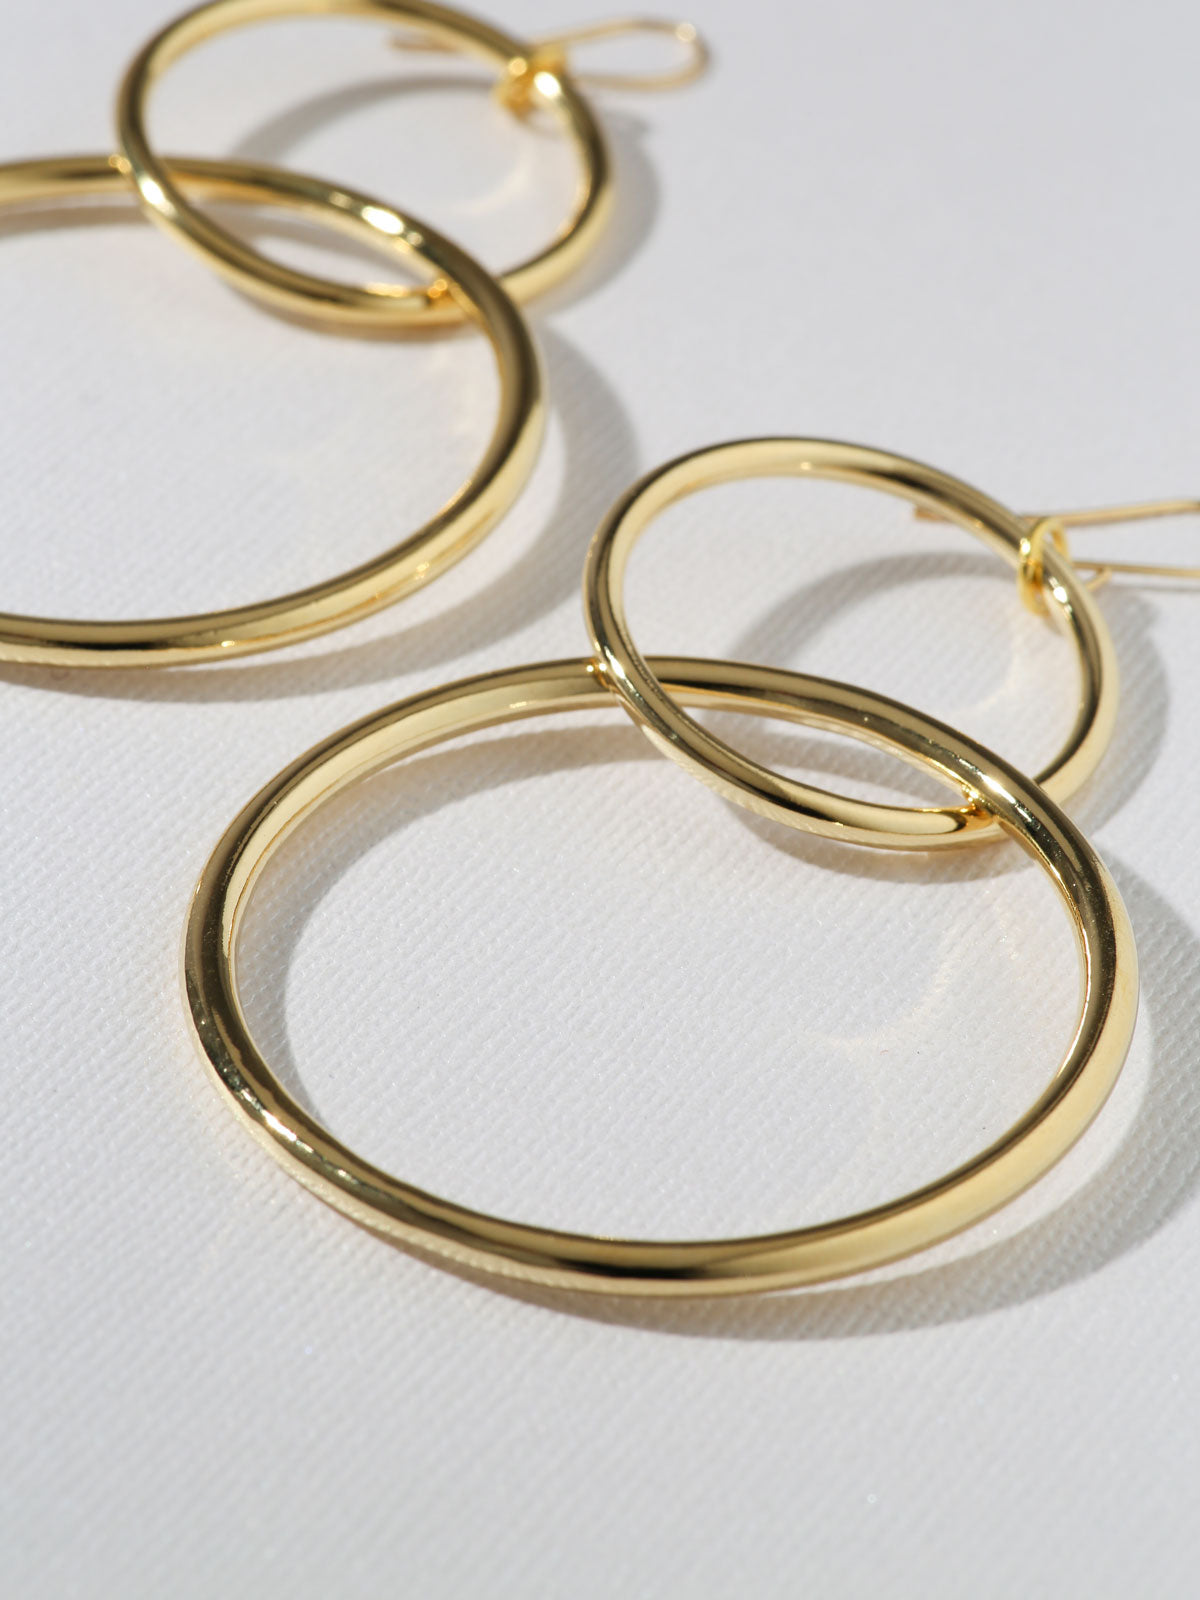 Earrings The Interlocking Hoop Earrings Vanessa Mooney